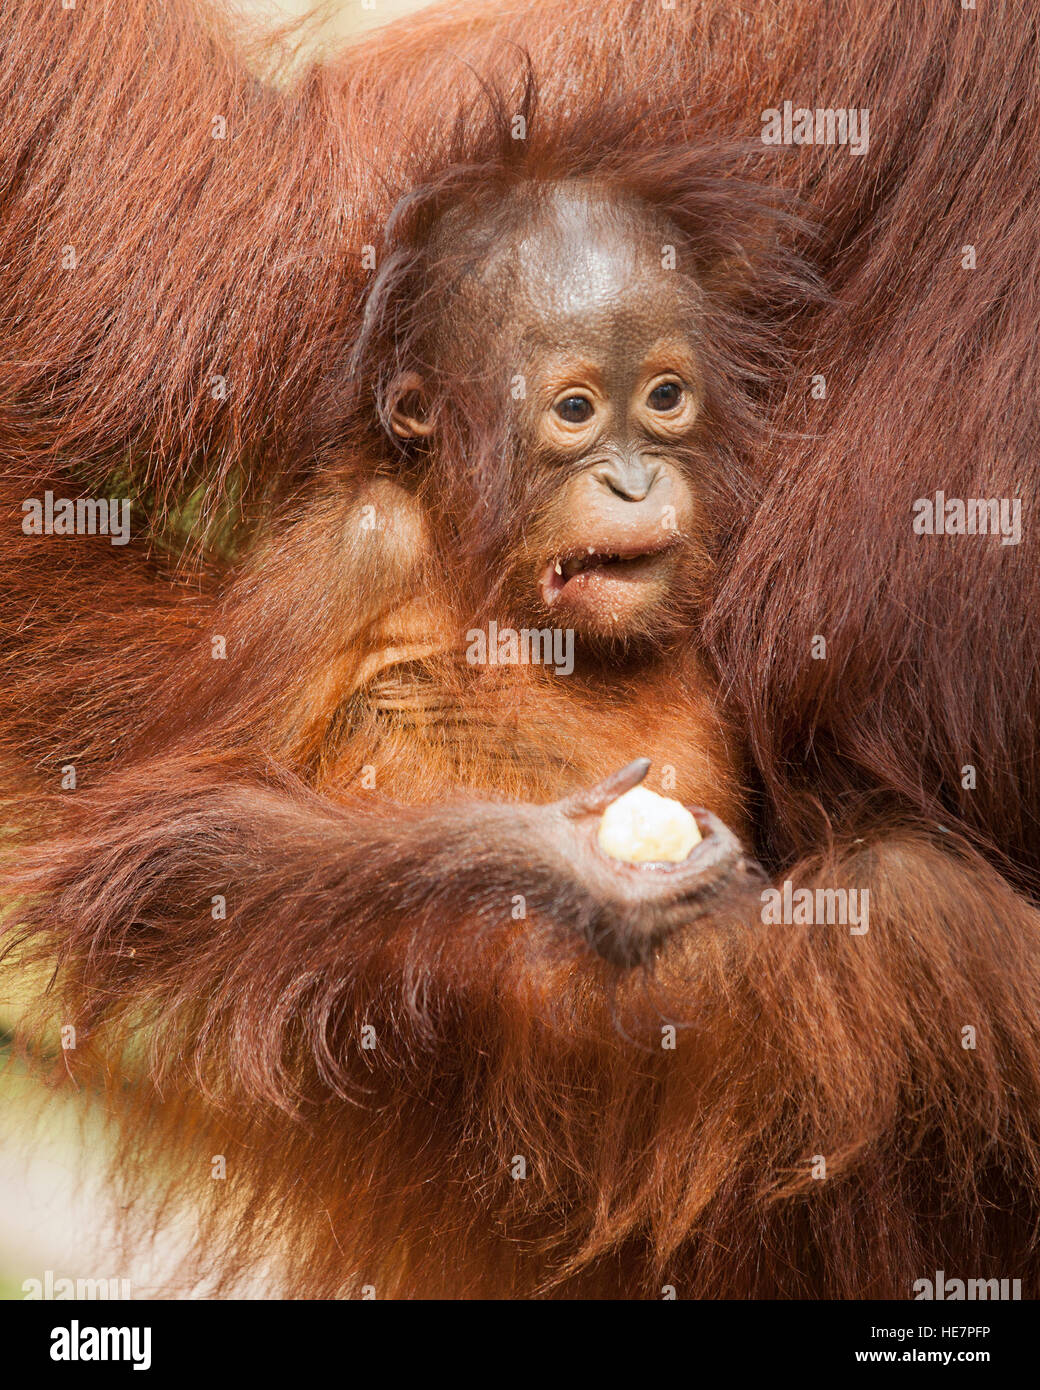 Wild Bornean Orangutan baby (Pongo pygmaeus) making a face while clutching piece of banana from supplemental feeding - Stock Image